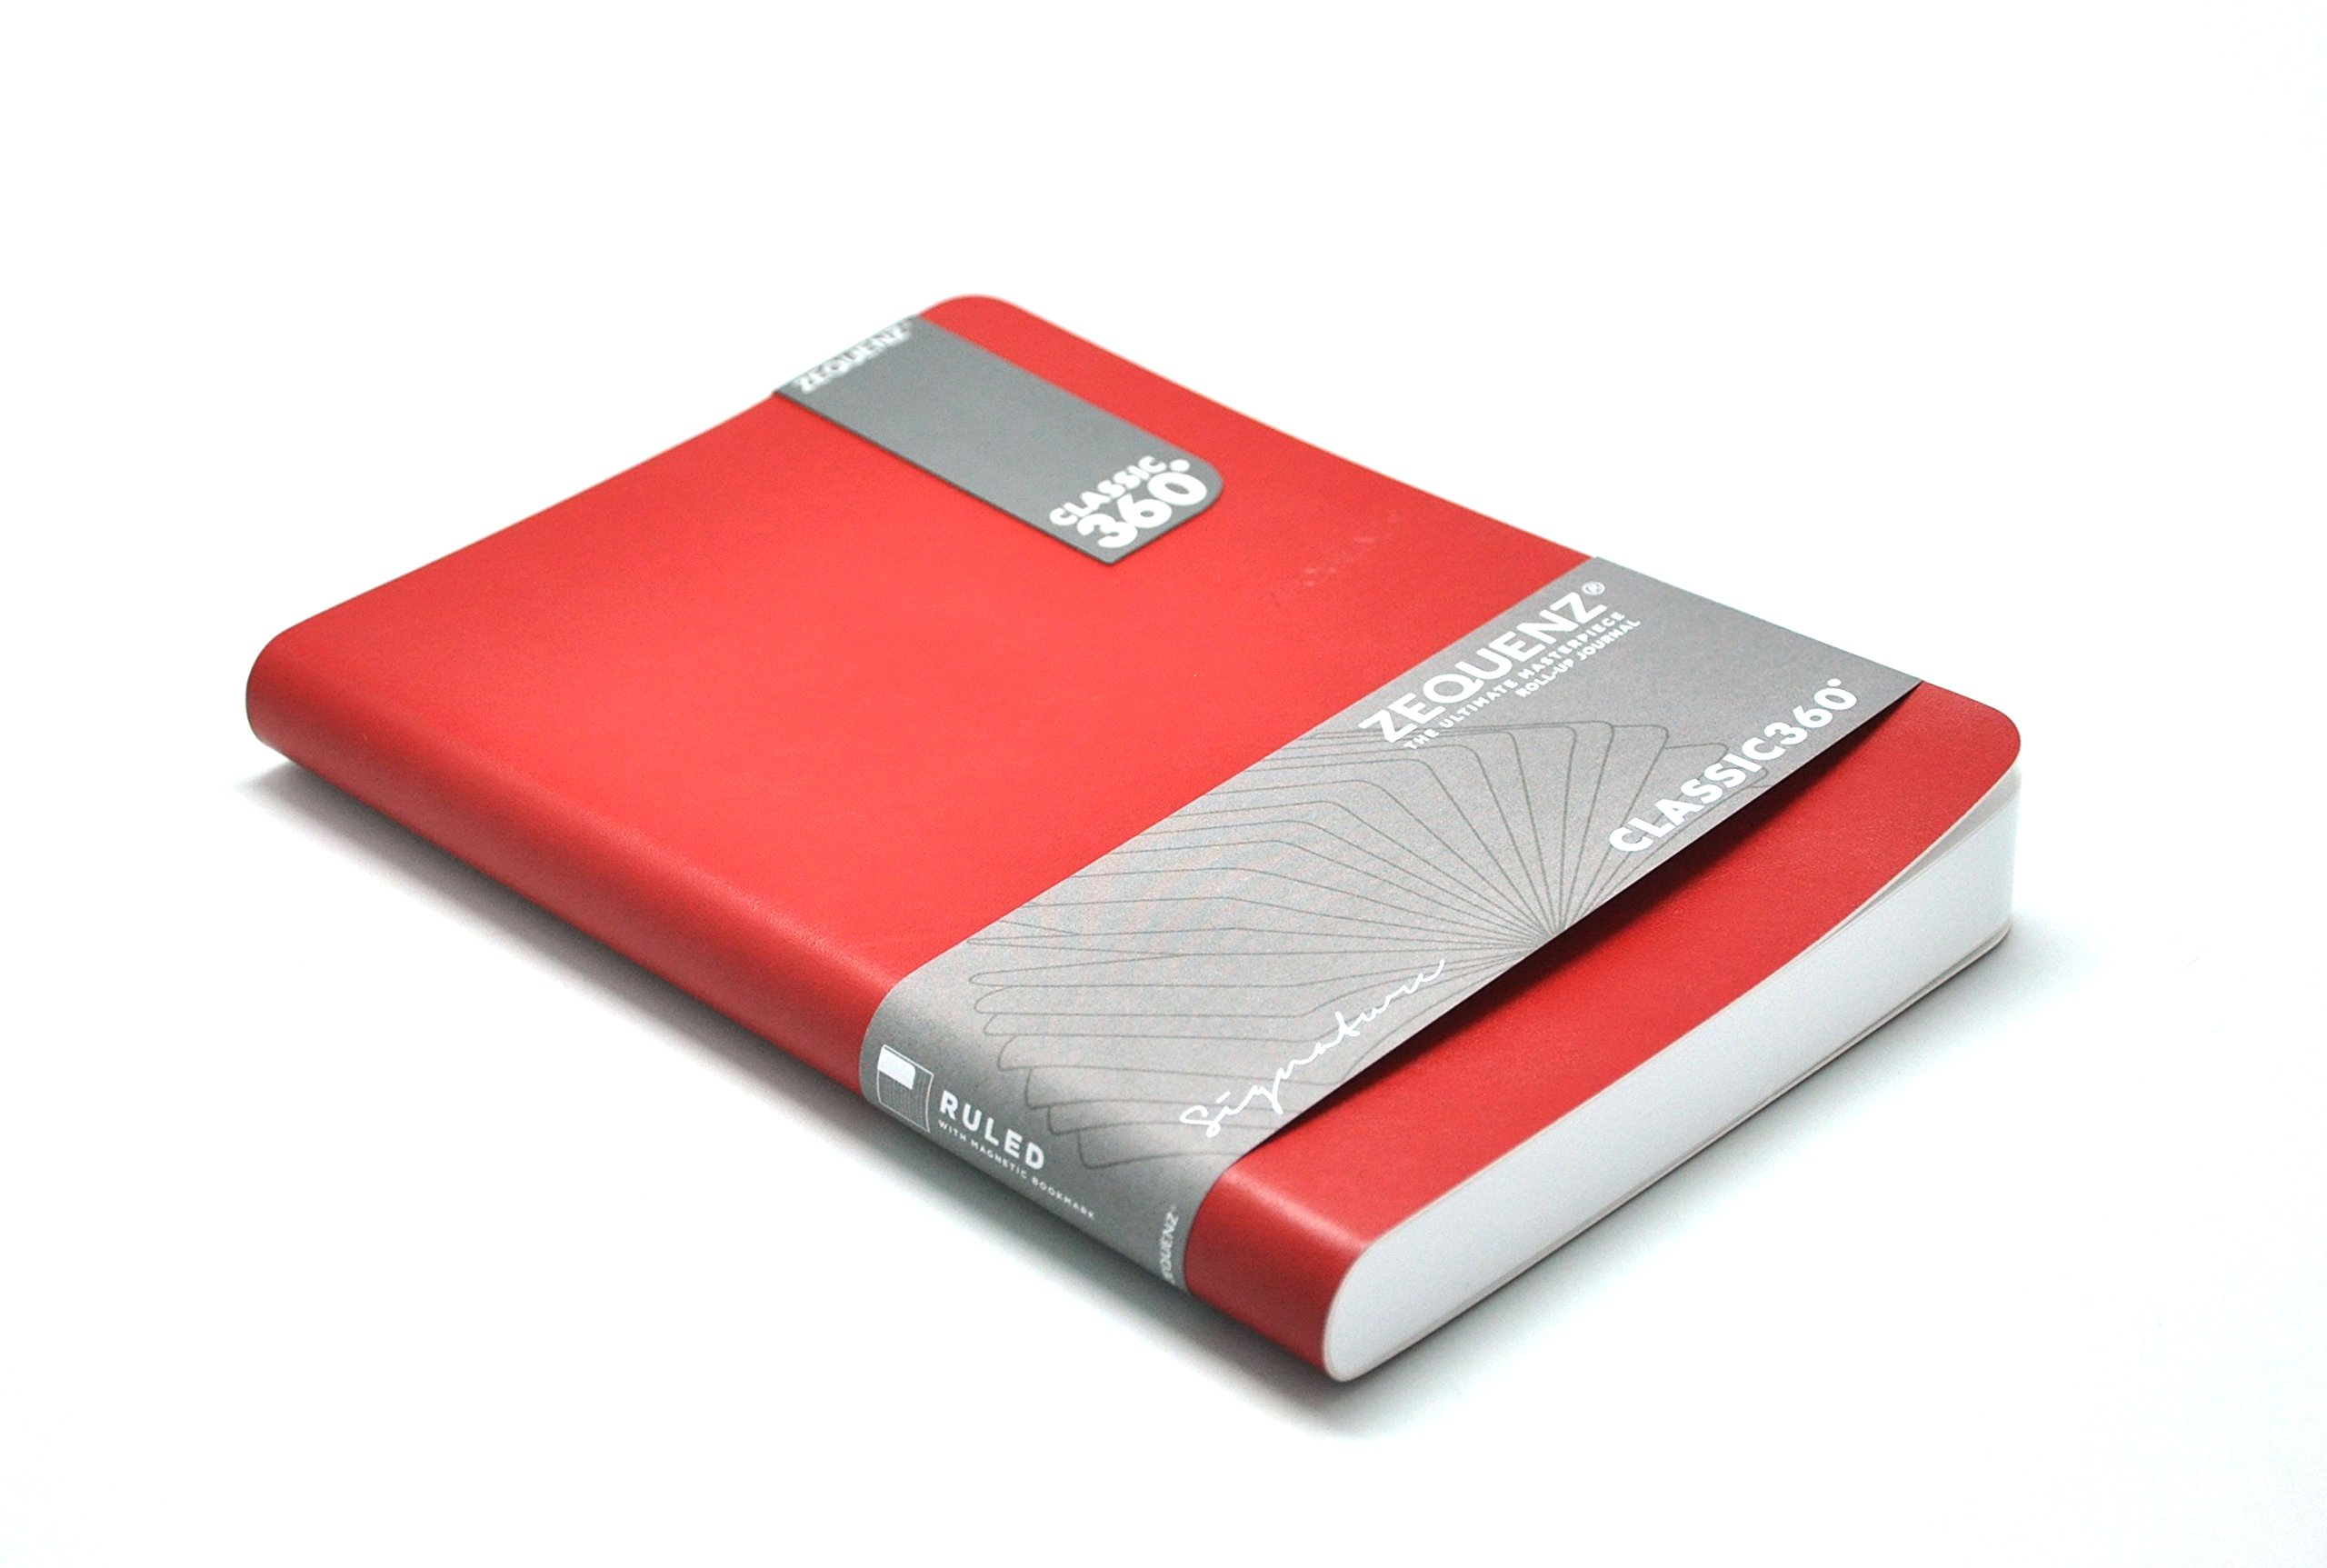 Zequenz Classic 360 Soft Bound Journal, Soft Cover Notebook, Large, 5.75'' x 8.25'', Red cover, 200 sheets / 400 pages, Squared, Graph, Grid Pattern premium paper by Zequenz